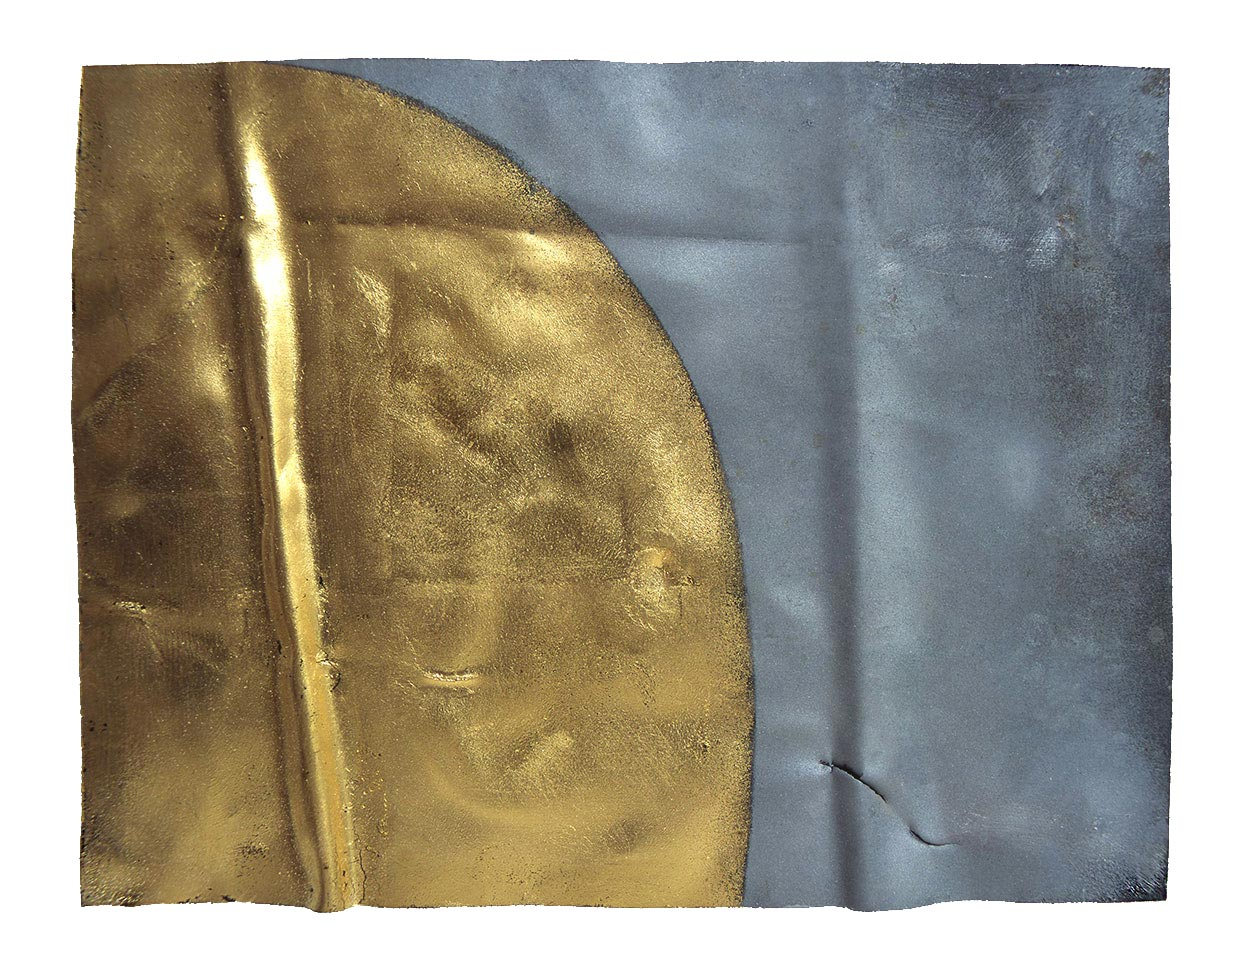 UNDULATING ELLIPSE  (III) 2000  gold leaf on eroded zinc  20.4 x 26.7 x 3.3 cm   (private collection UK)